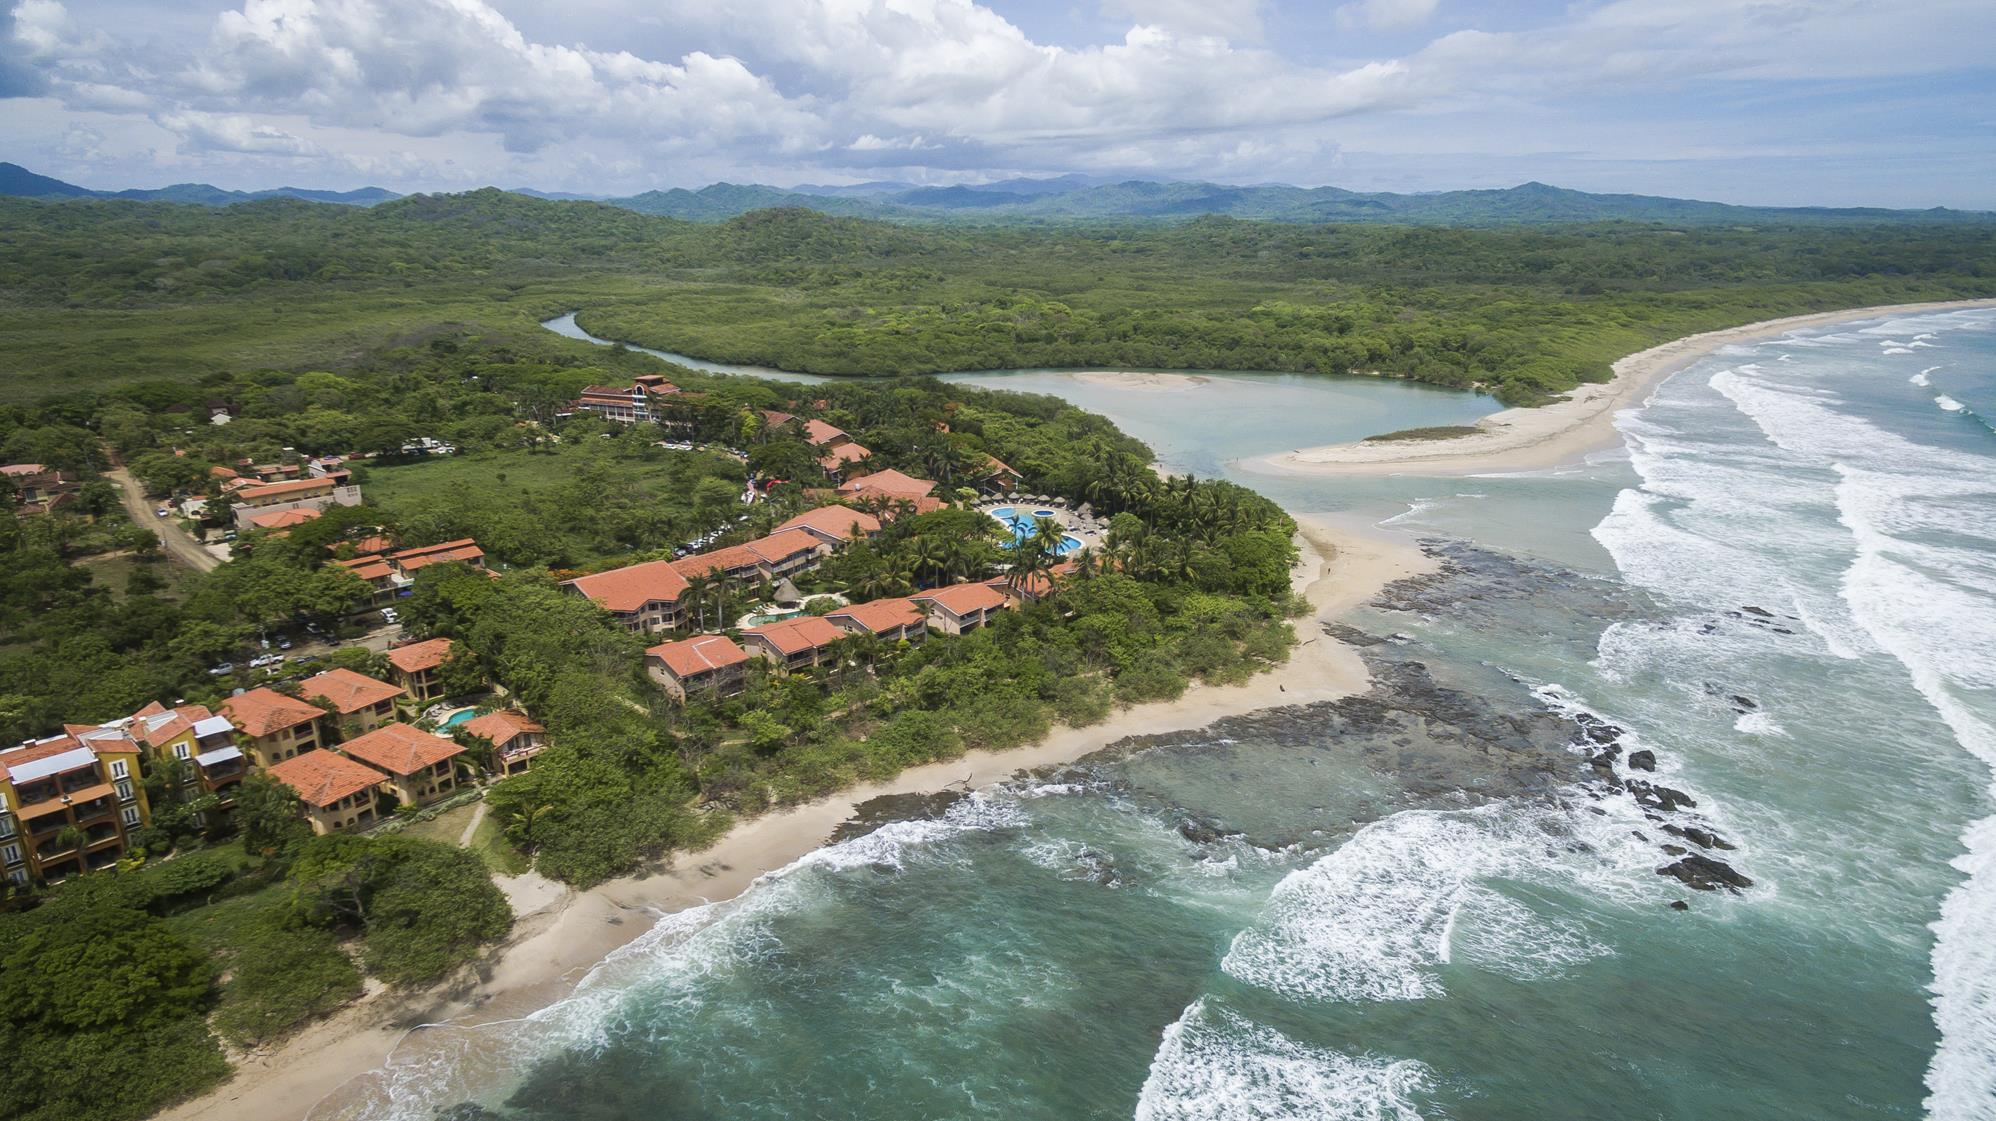 Areal view, Langosta beach and estuary